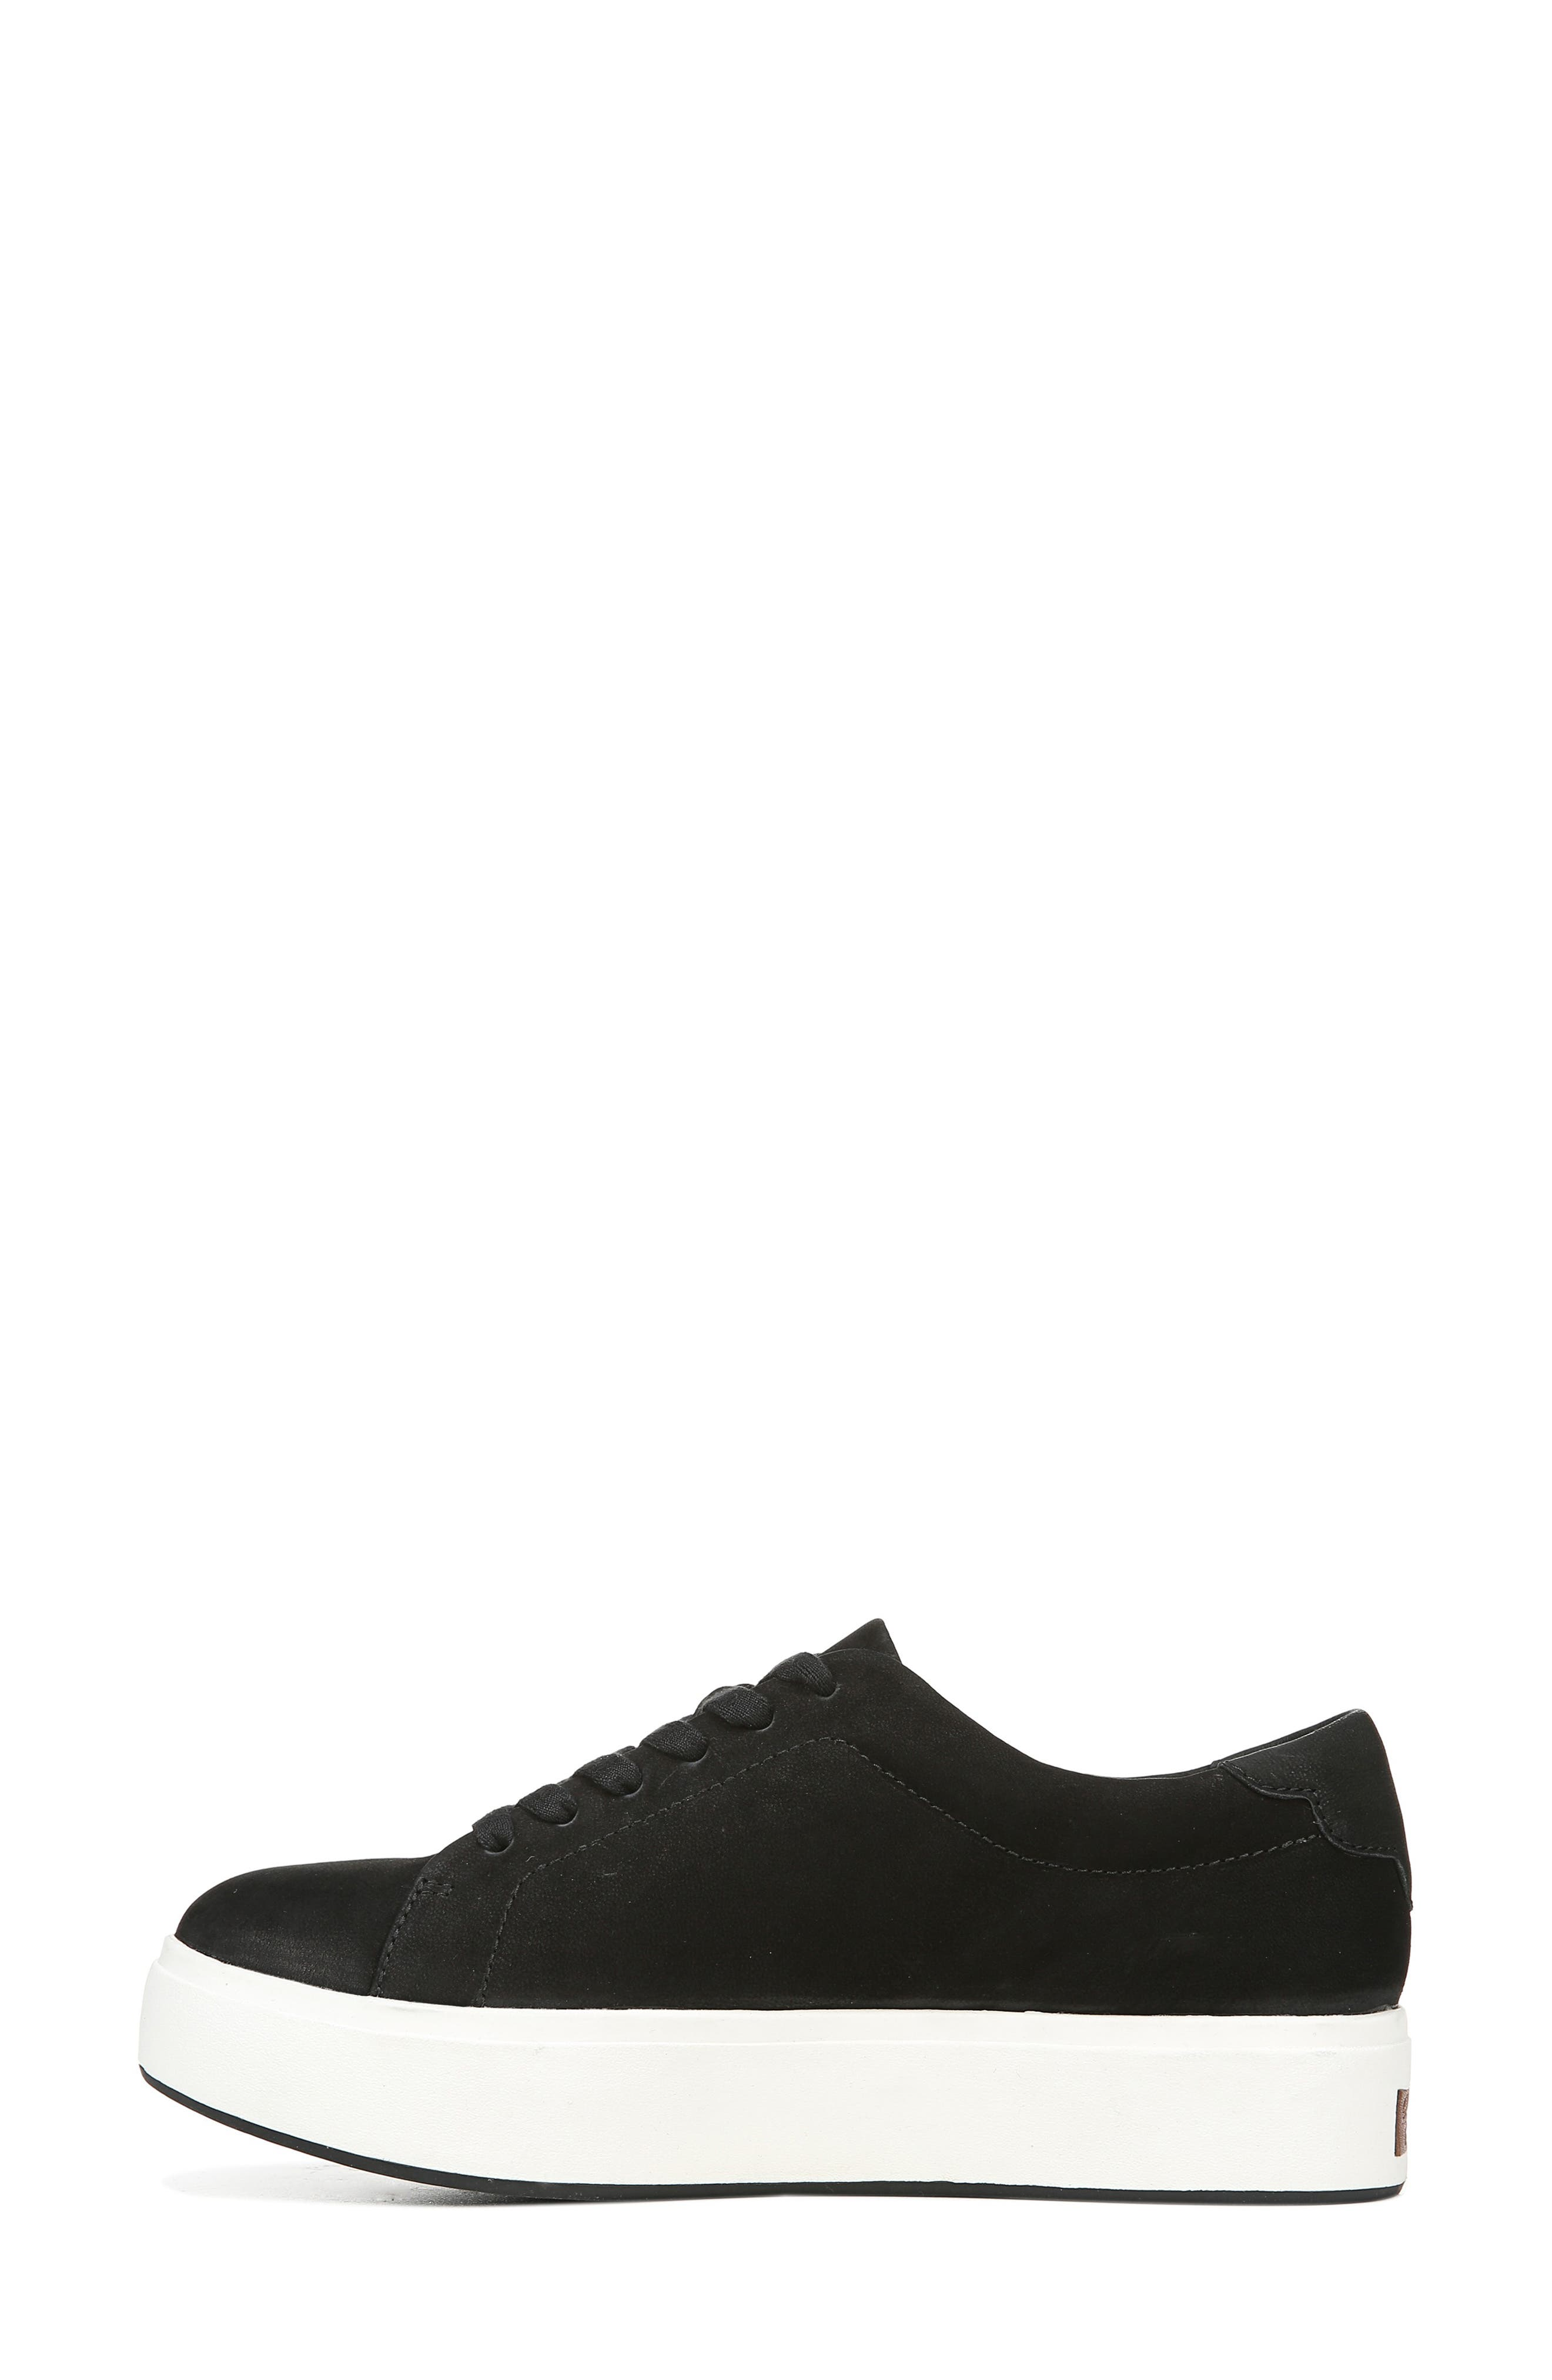 DR. SCHOLL'S, Abbot Luxe Platform Sneaker, Alternate thumbnail 8, color, BLACK SUEDE